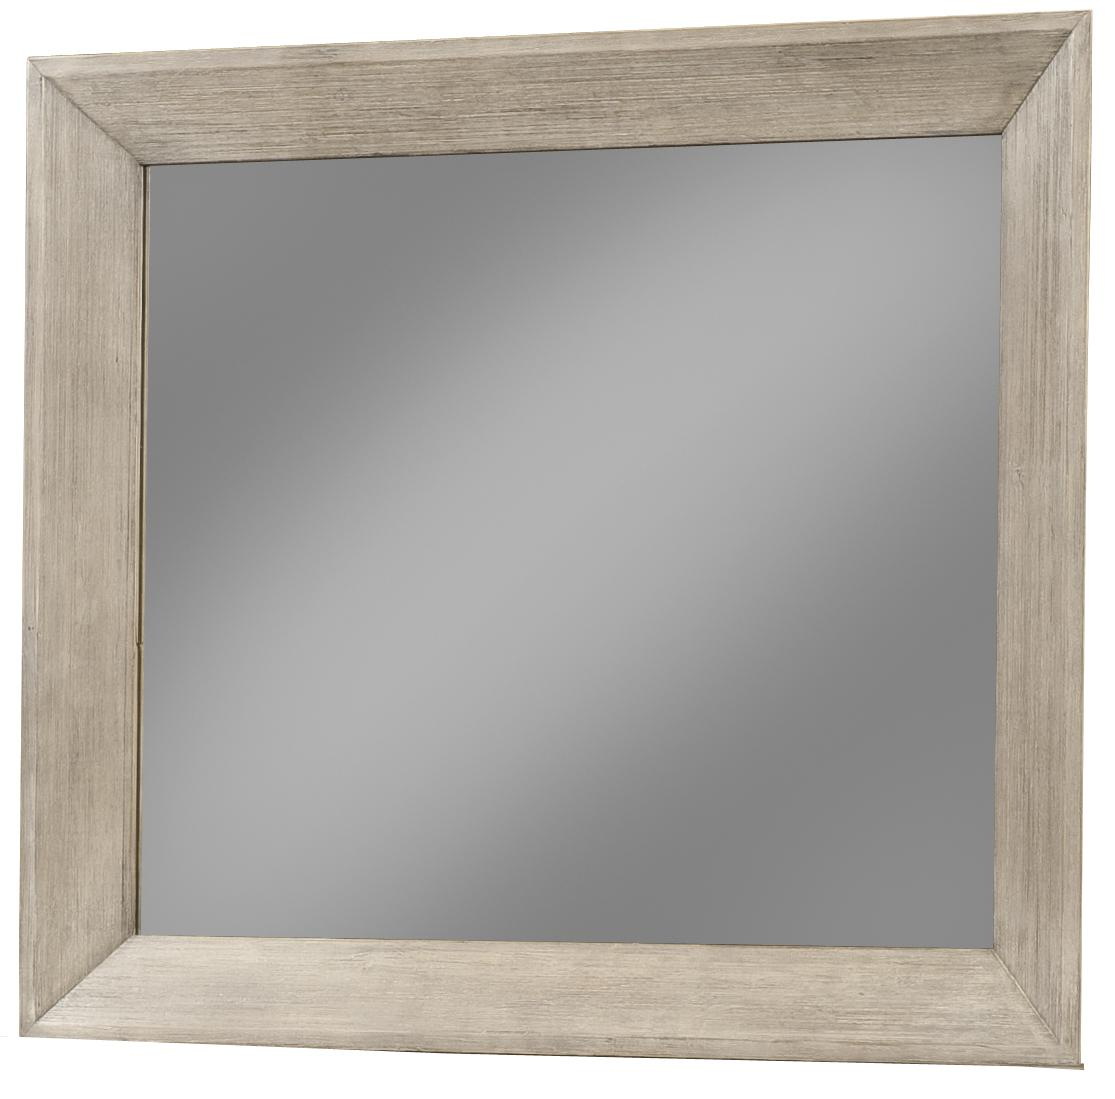 Cresent Fine Furniture Corliss Landing Mirror - Item Number: 5602